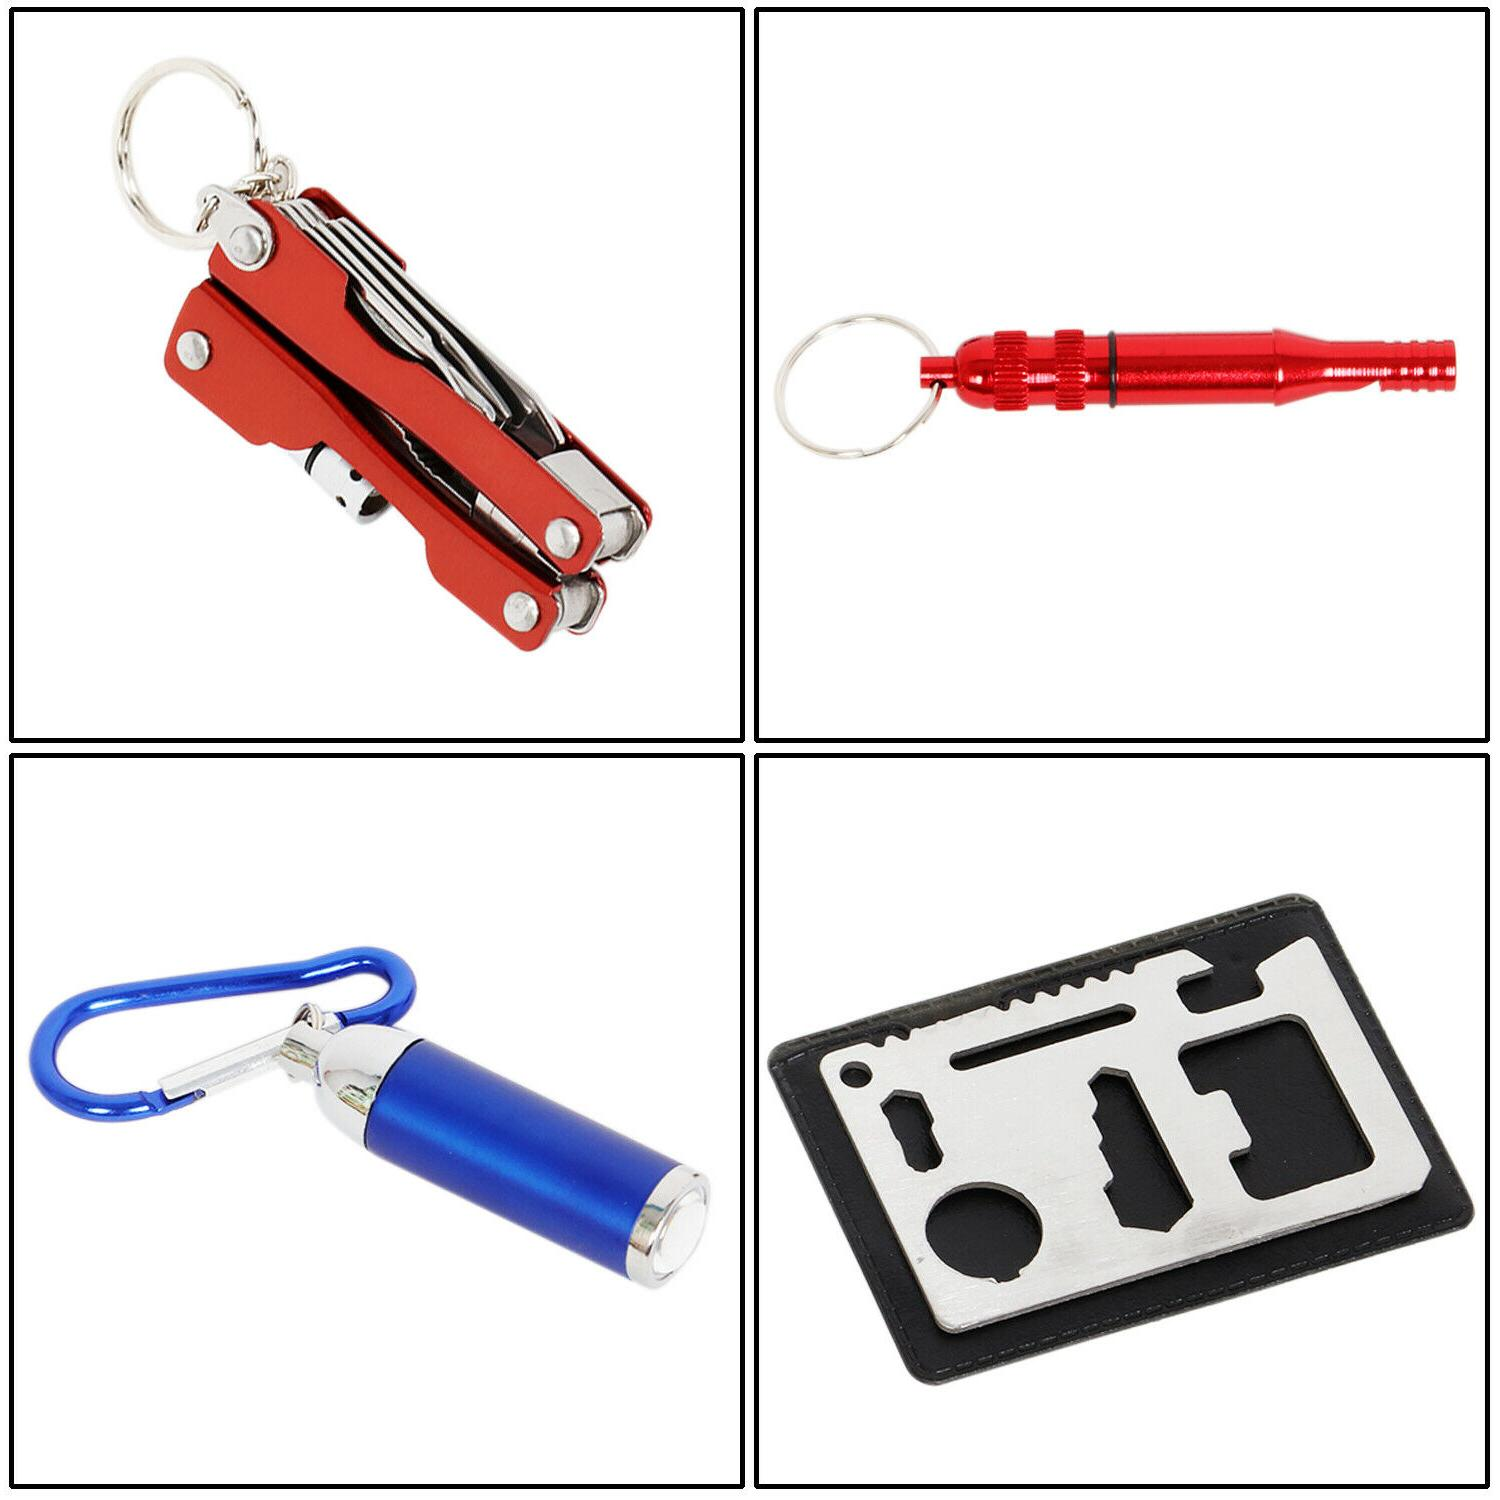 7 in Emergency Survival Kit Outdoor Gear Tool Camping